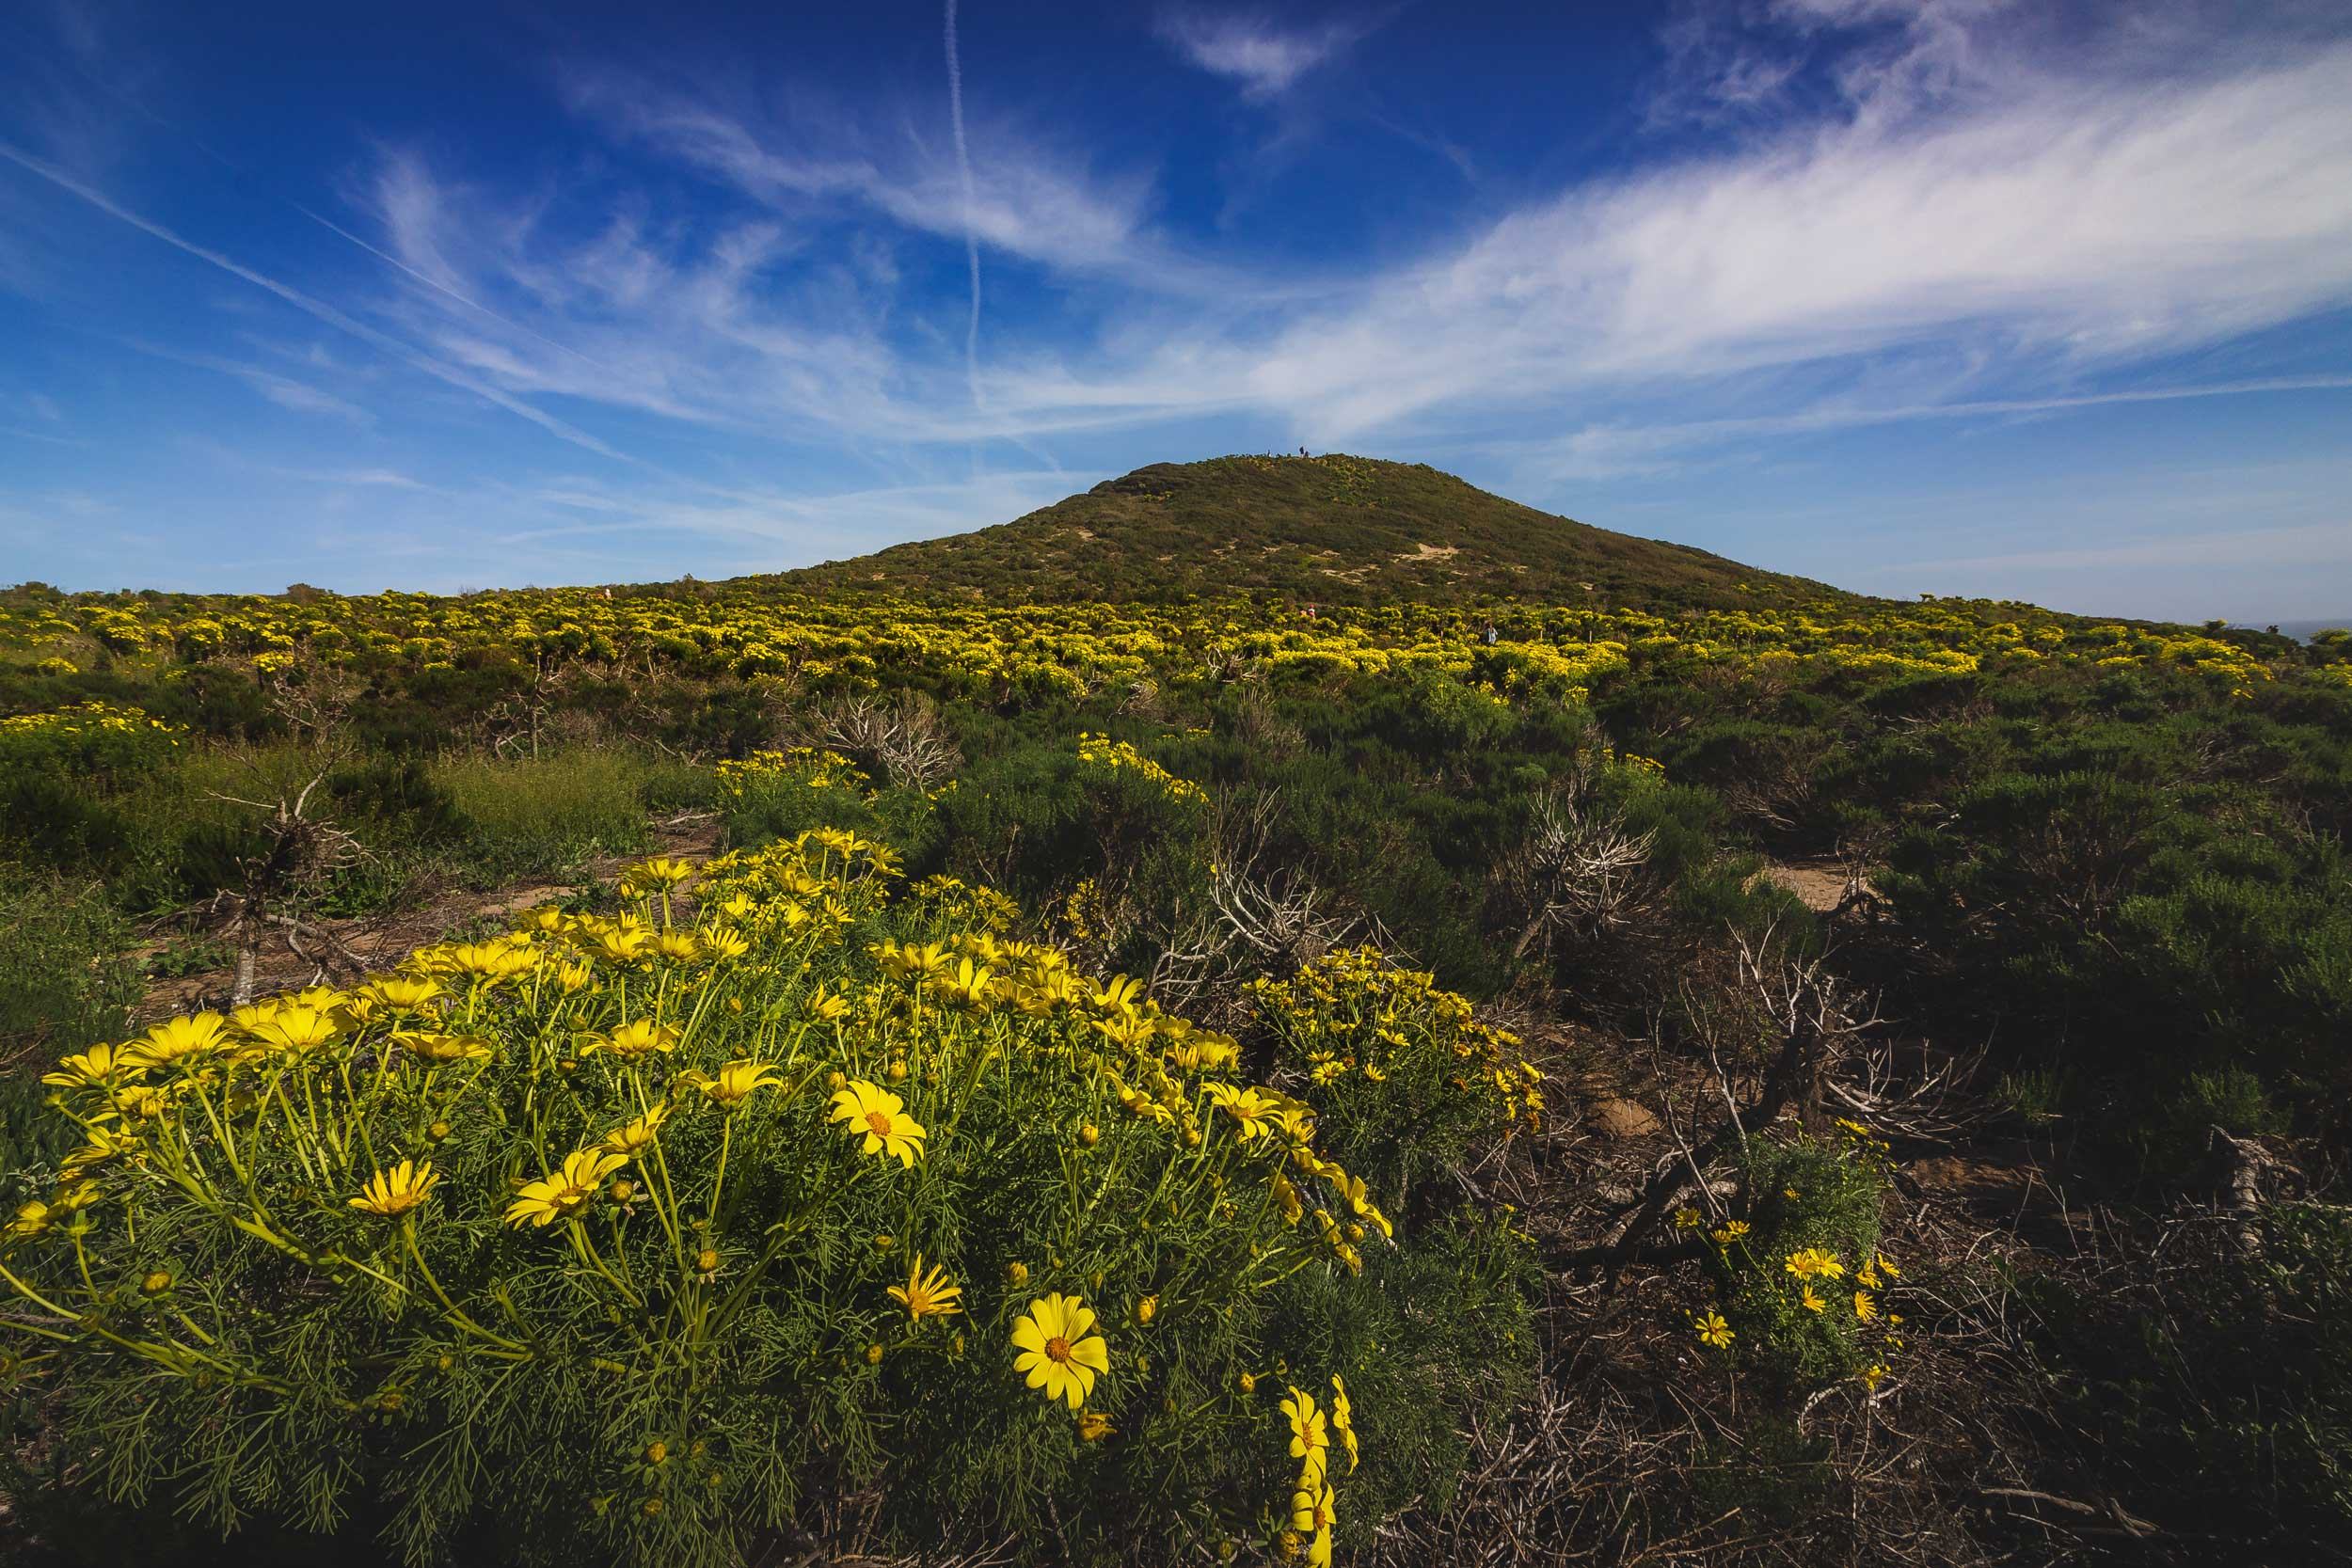 Wildflowers stretching into the distance up to a mountain in the distance, Malibu